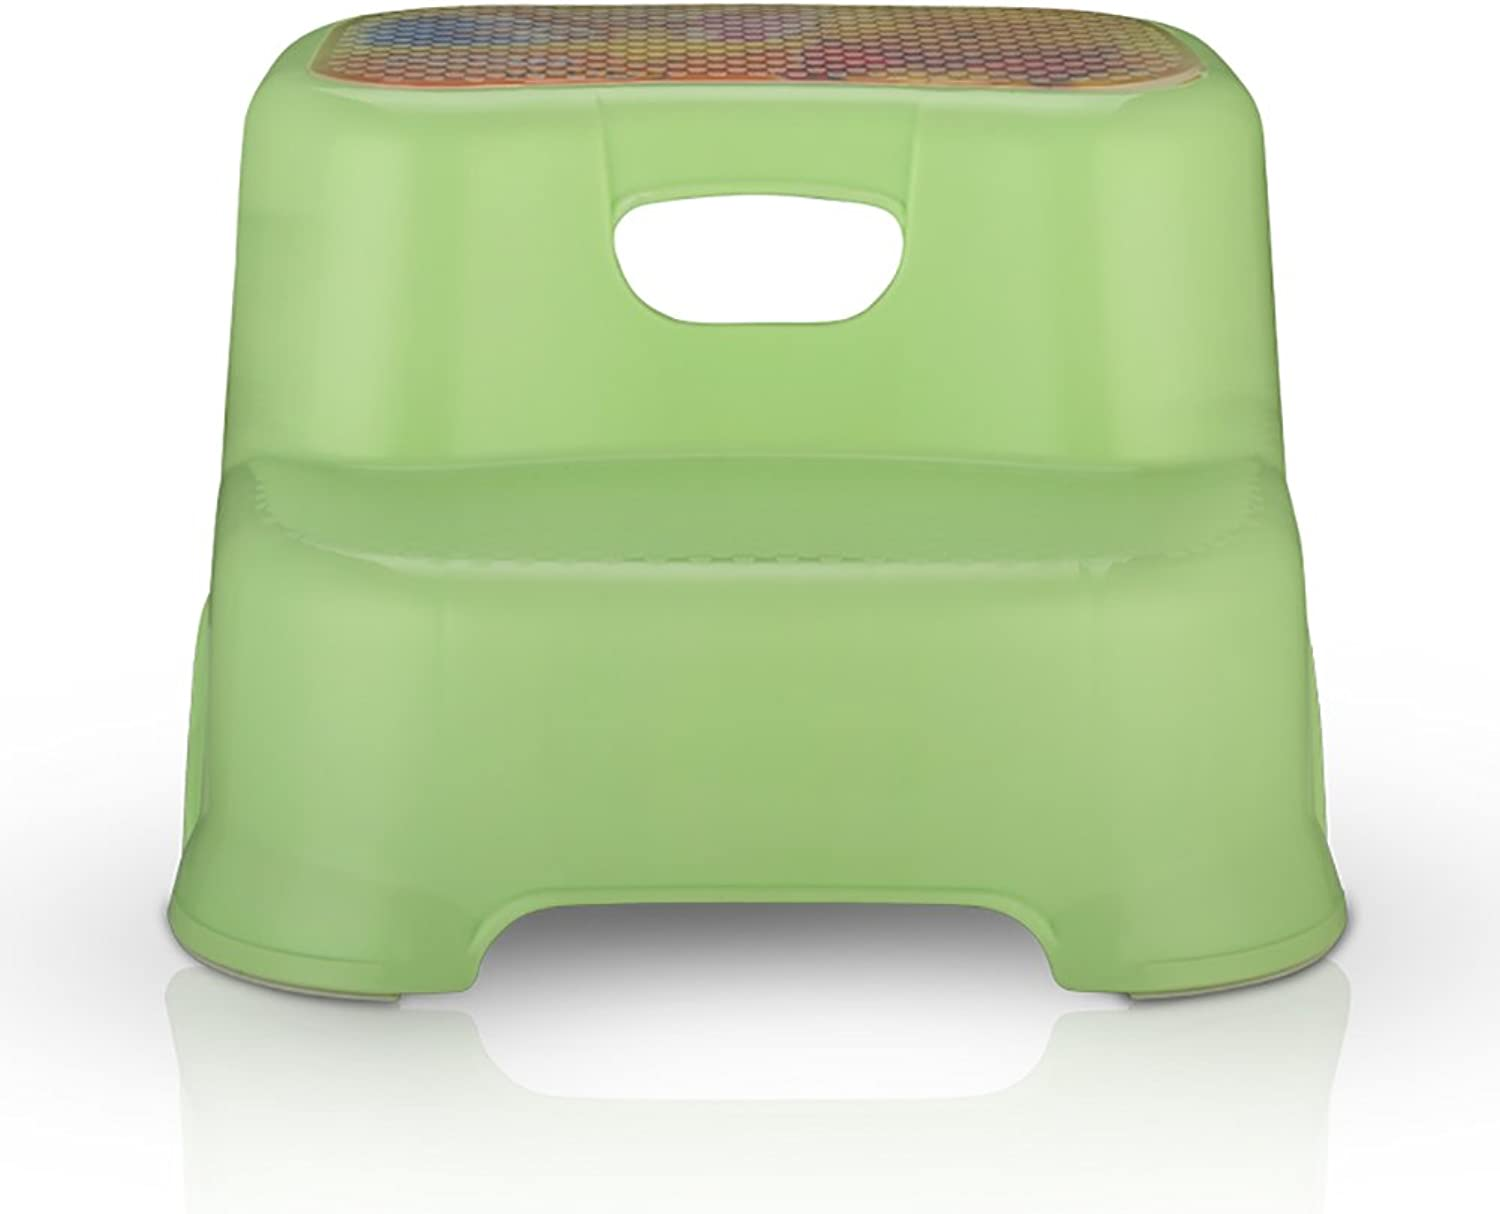 Toddler Step Stool  2 Step Stool For Kids Washstand Ladder Stool For Kids Toddler's Stool For Potty Training And Use In The Bathroom Or Kitchen (color   GREEN)